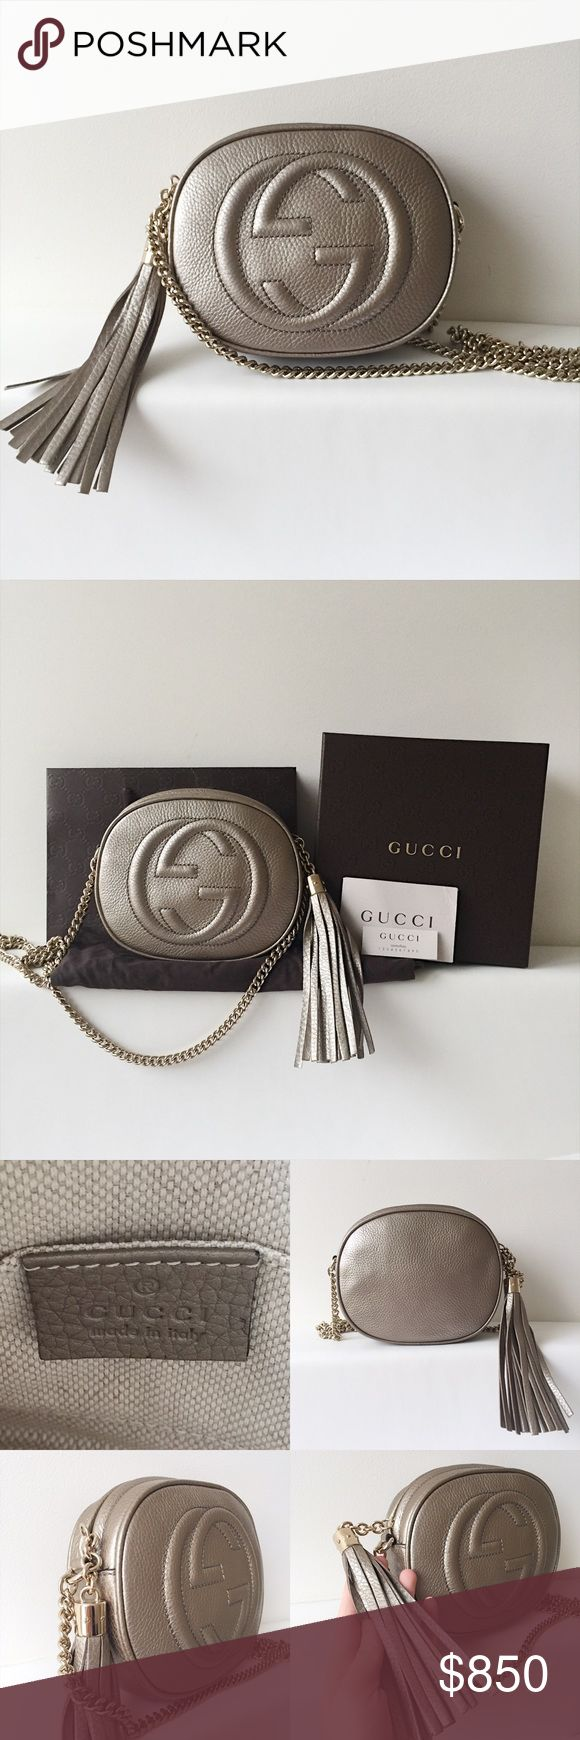 GUCCI mini disco metallic leather bag Price is negotiable through other channel. Gucci Bags